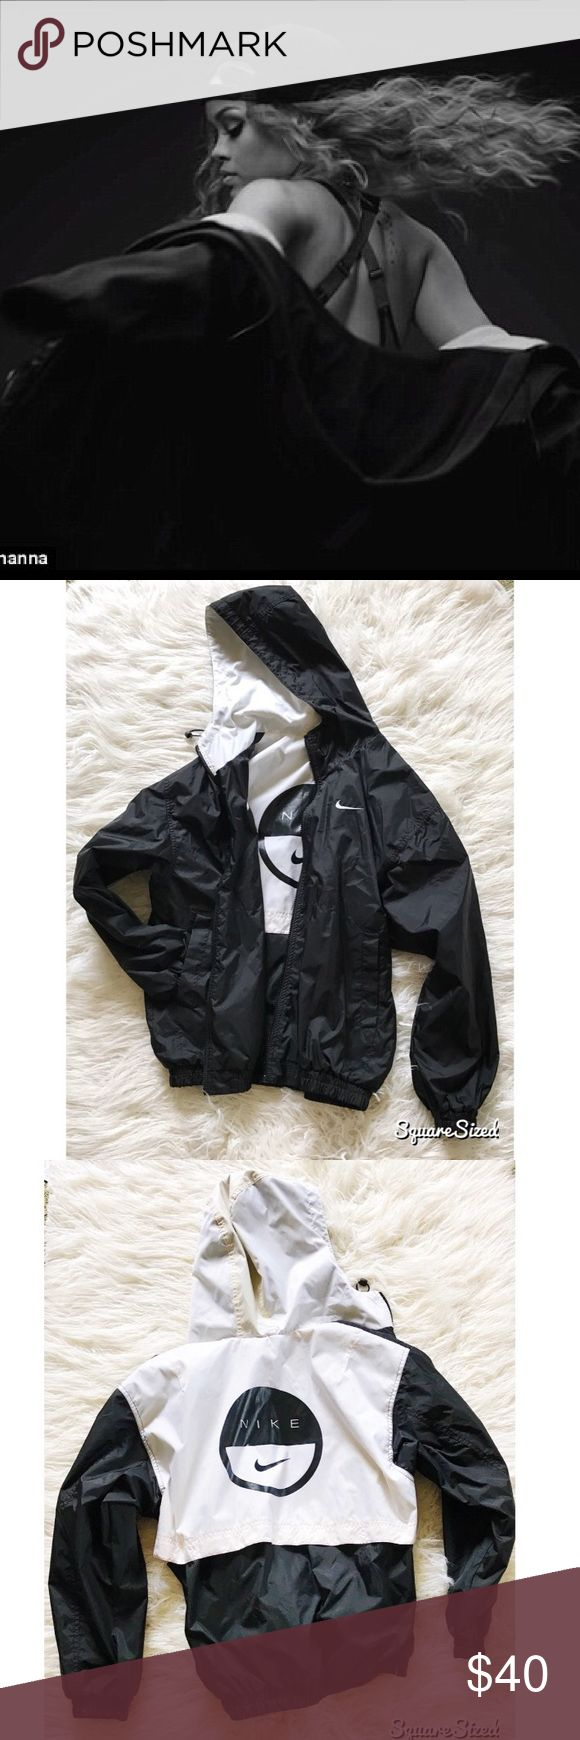 Old School Nike Windbreaker Jacket You can wear this reversible vtg 90's windbreaker all black or flip it inside out and have a color-block black and white look.  featuring embroidered Nike long on both sides, pockets and adjustable hood. Slight discoloration, small pen marks on the white hood but in otherwise excellent condition. Labeled size M but I like to wear mine oversized. Bring back the retro Hip-Hop street fashion with this 90's Nike windbreaker. Athletic wear or pair with high…